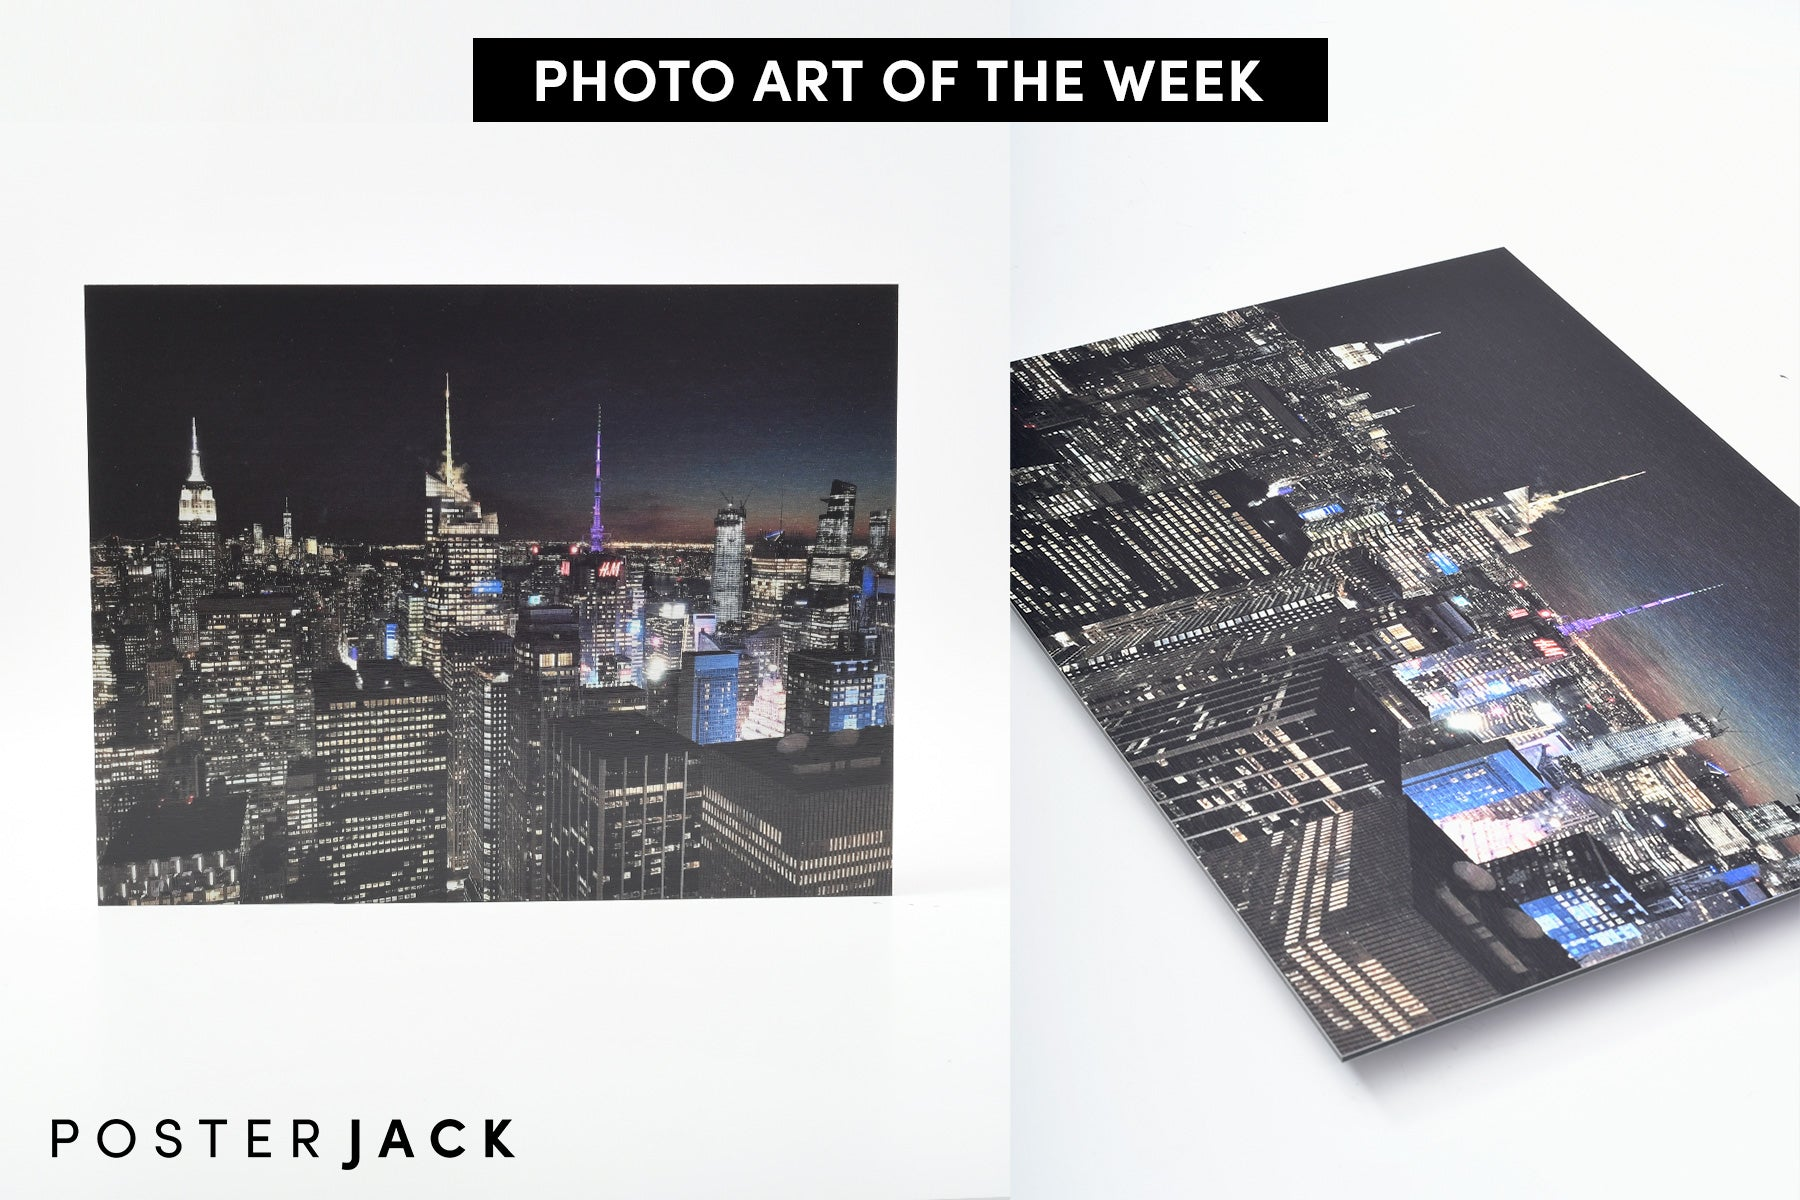 New York Skyline at Night: Photo Art of the Week